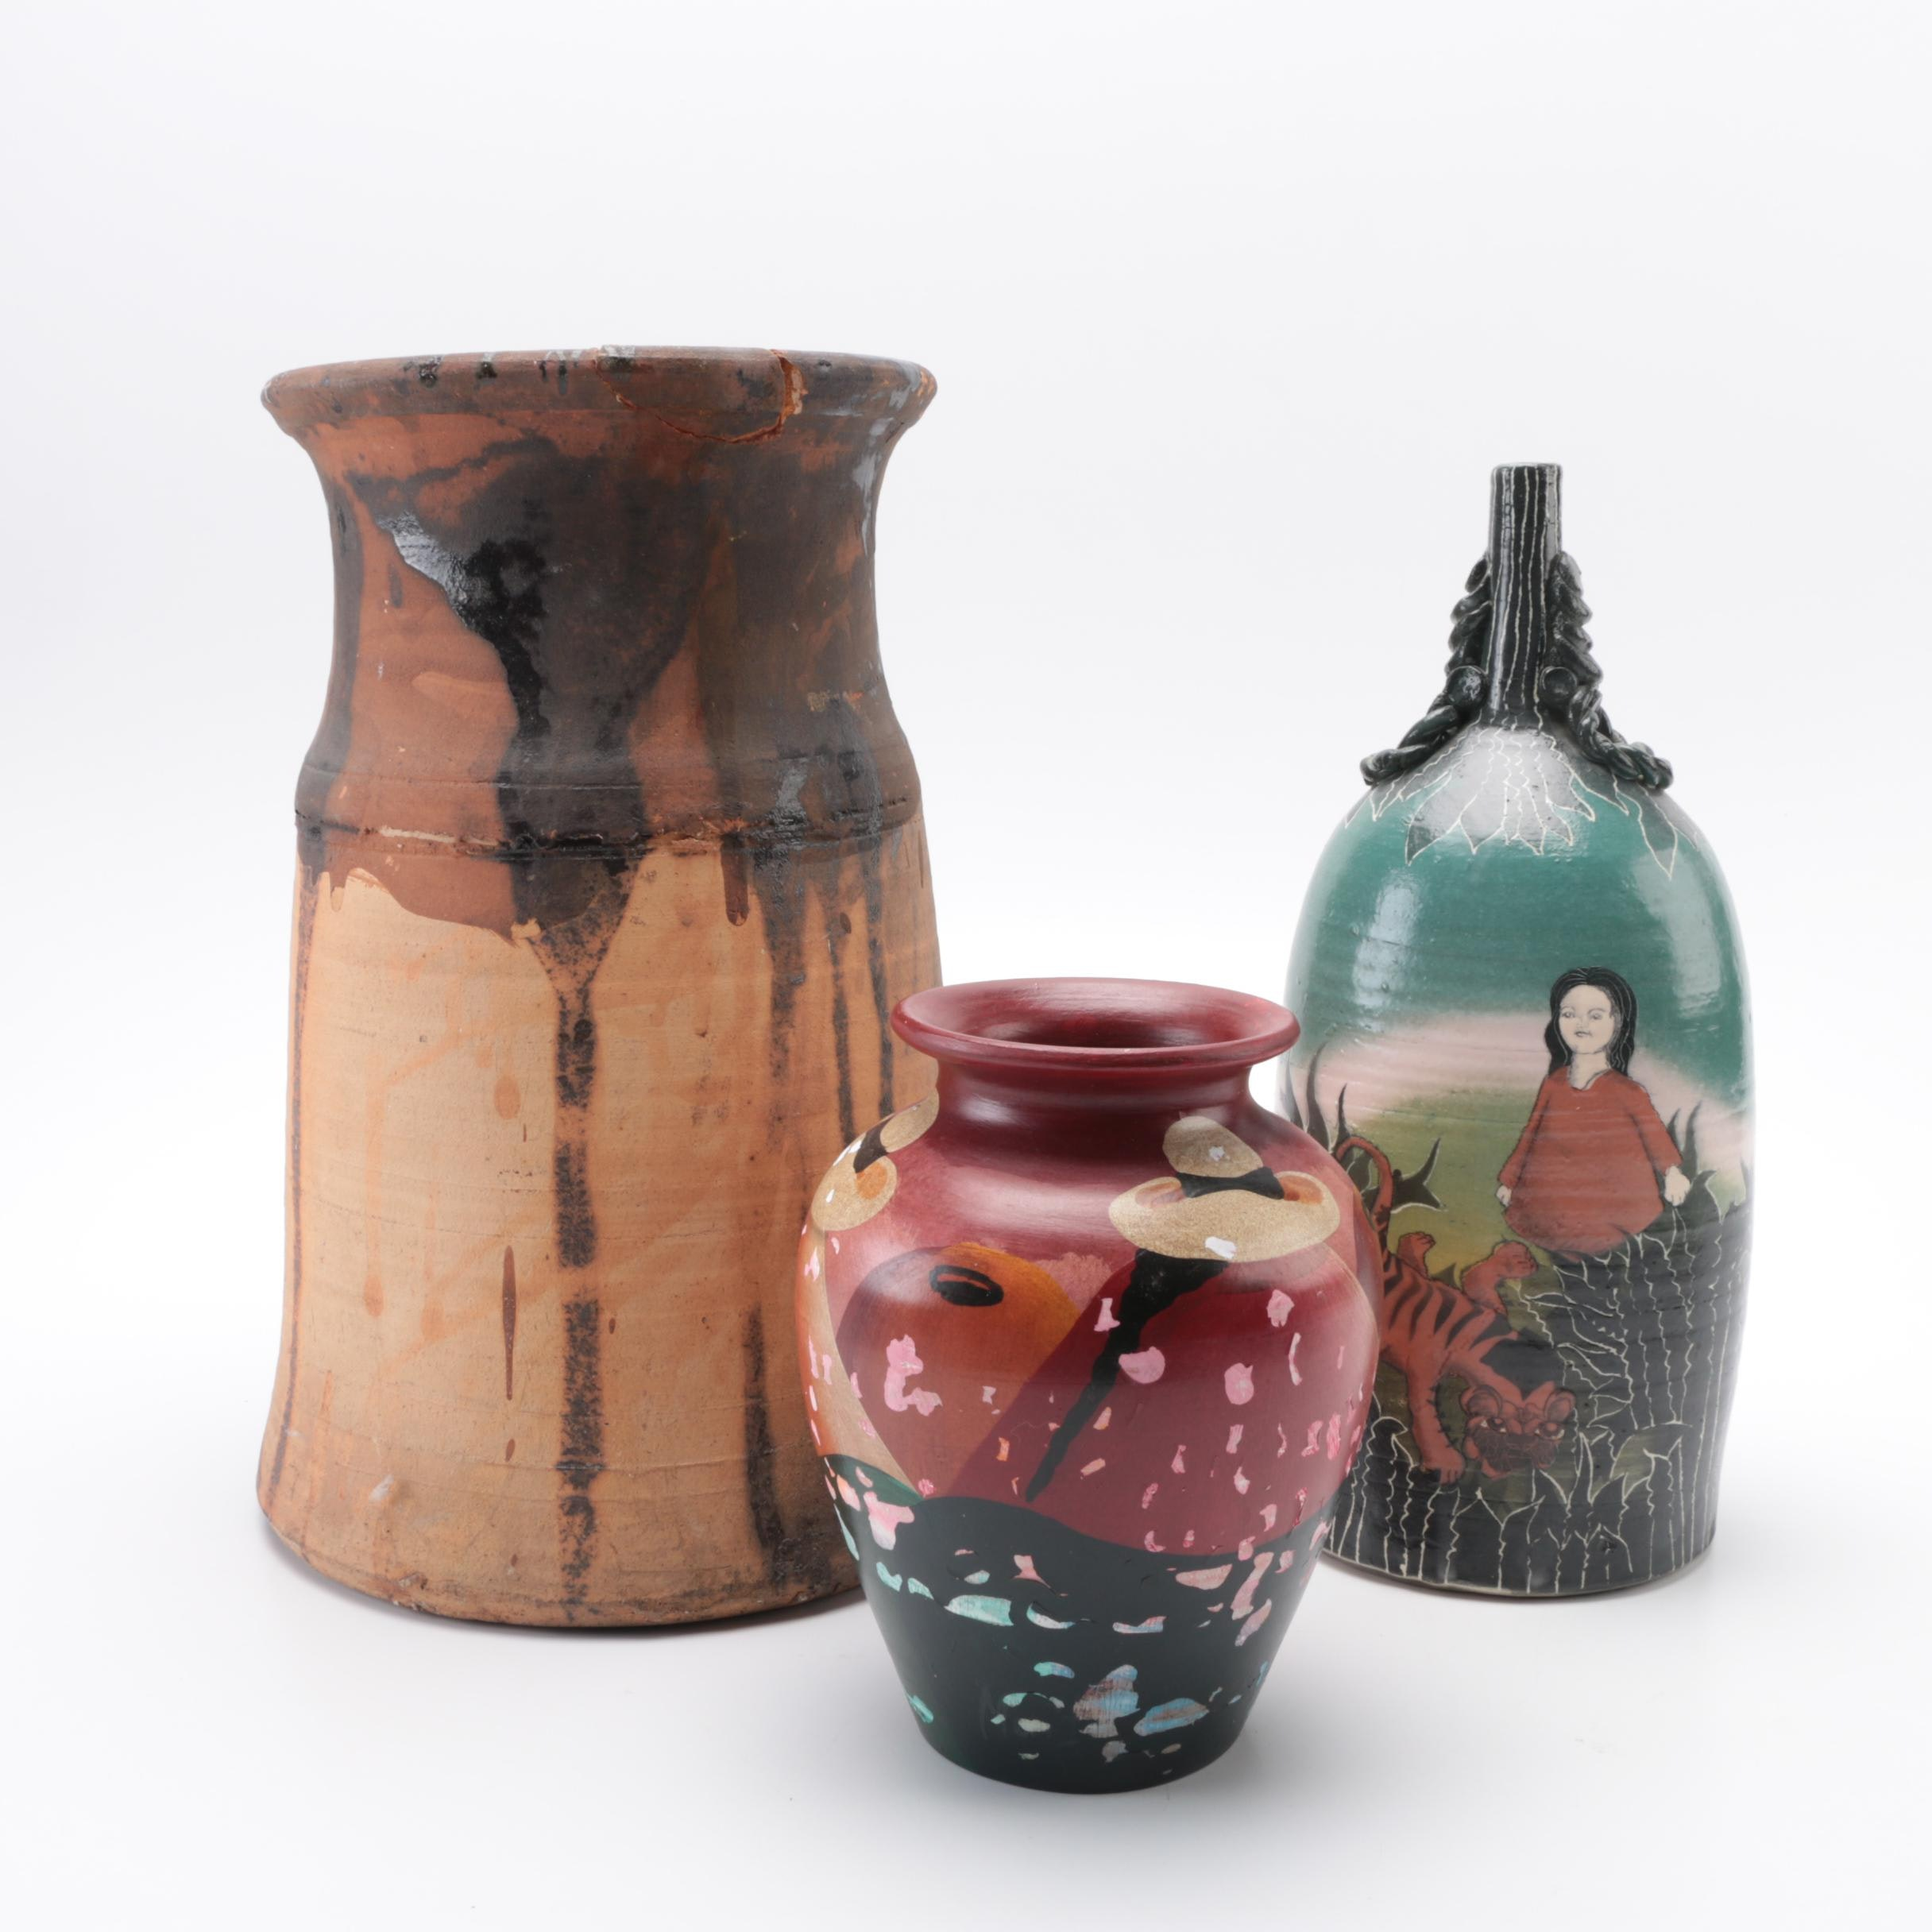 Lorio Raku Studio Pottery and Others